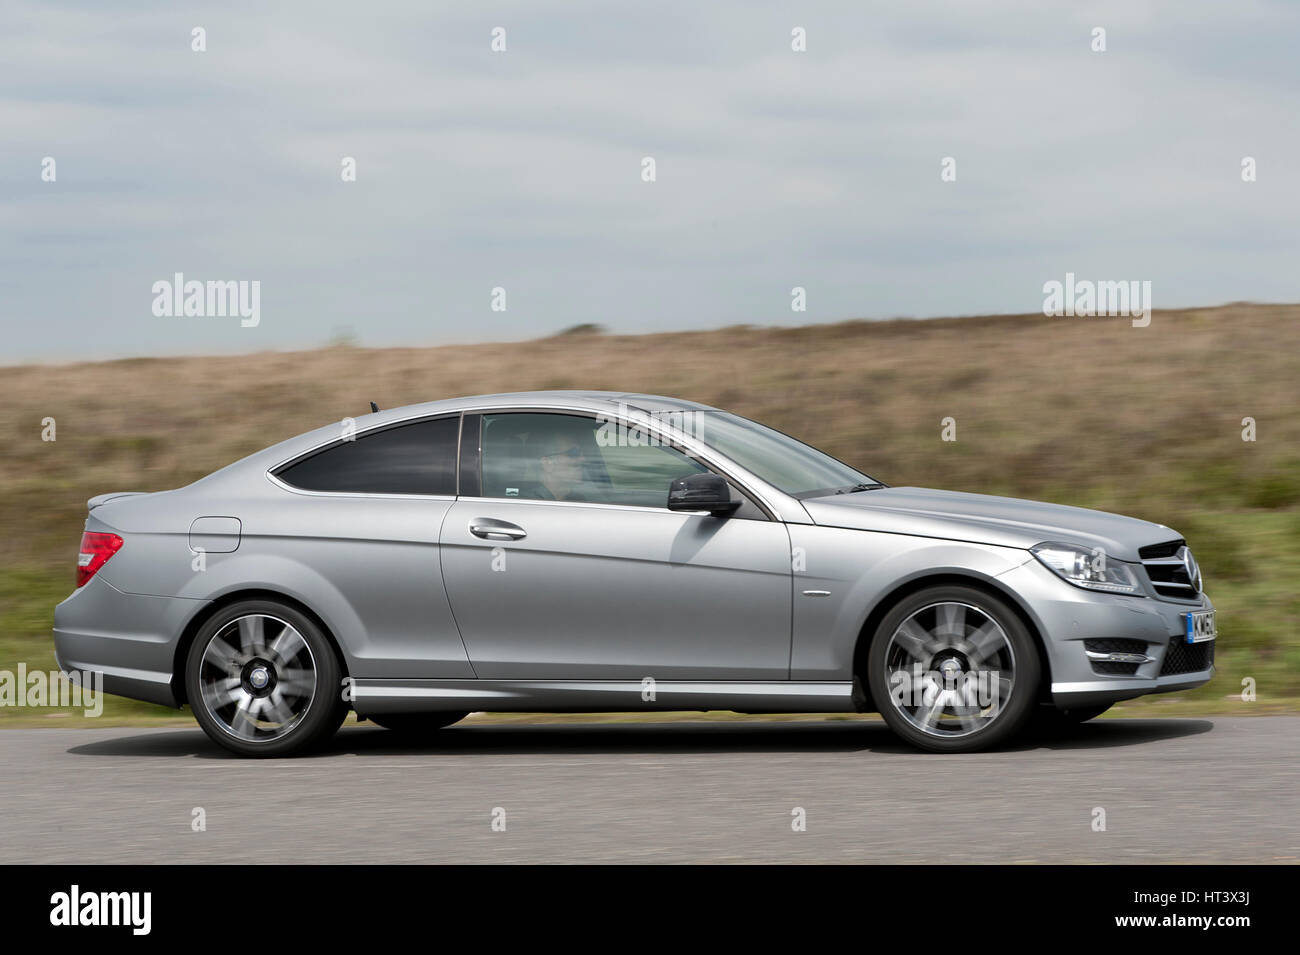 2013 Mercedes Benz C250 Cdi Coupe Amg Sport Artist Unknown Stock Photo Alamy